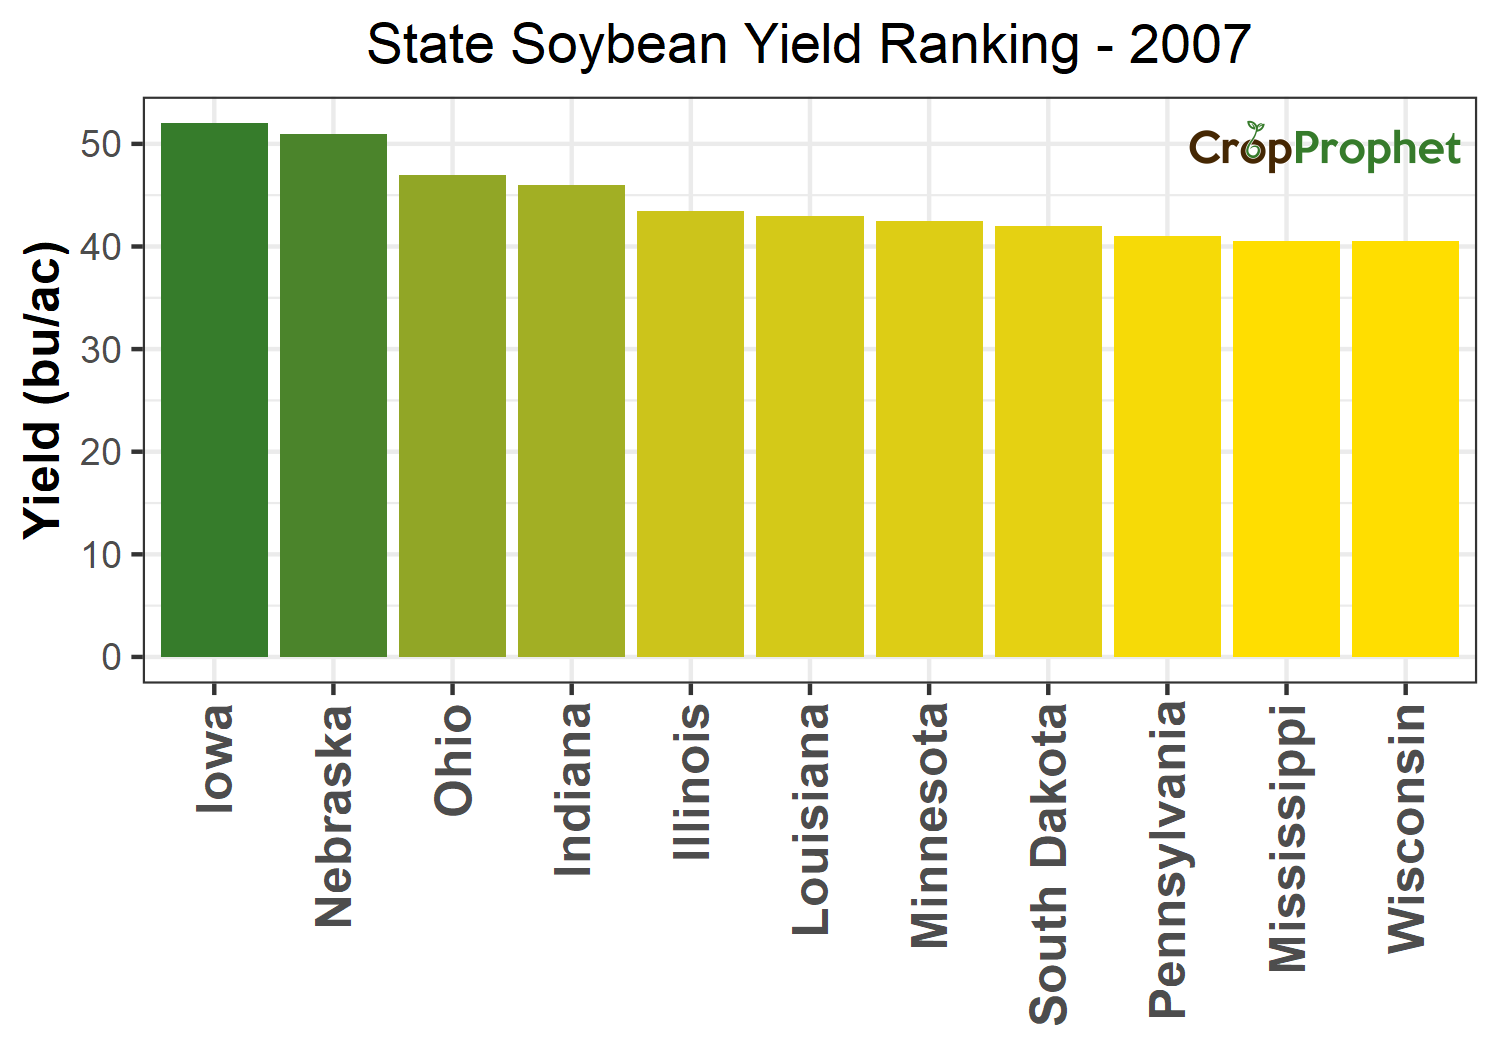 Soybean Production by State - 2007 Rankings